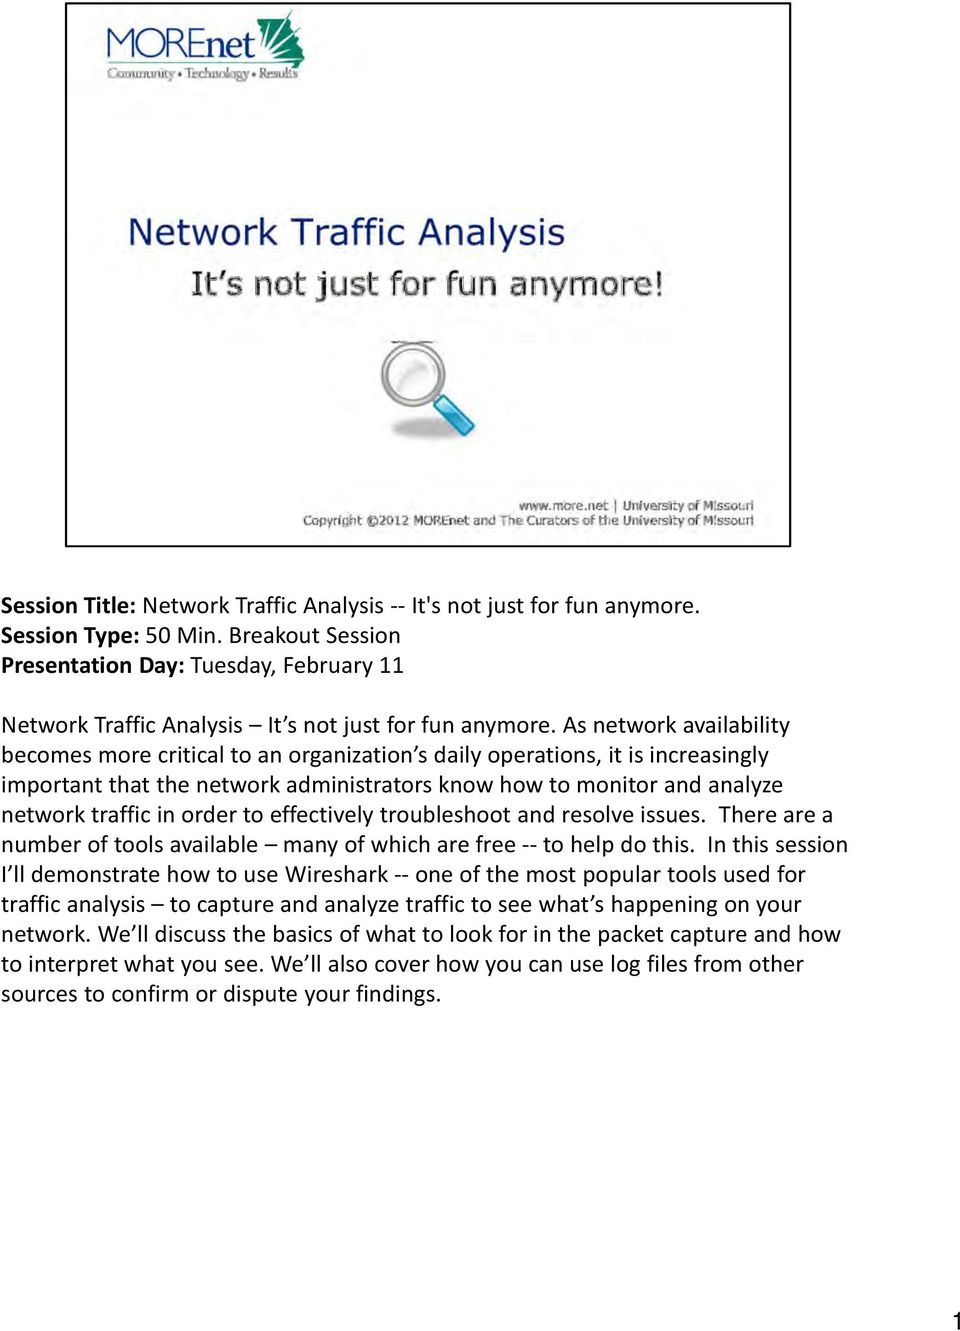 As network availability becomes more critical to an organization s daily operations, it is increasingly important that the network administrators know how to monitor and analyze network traffic in